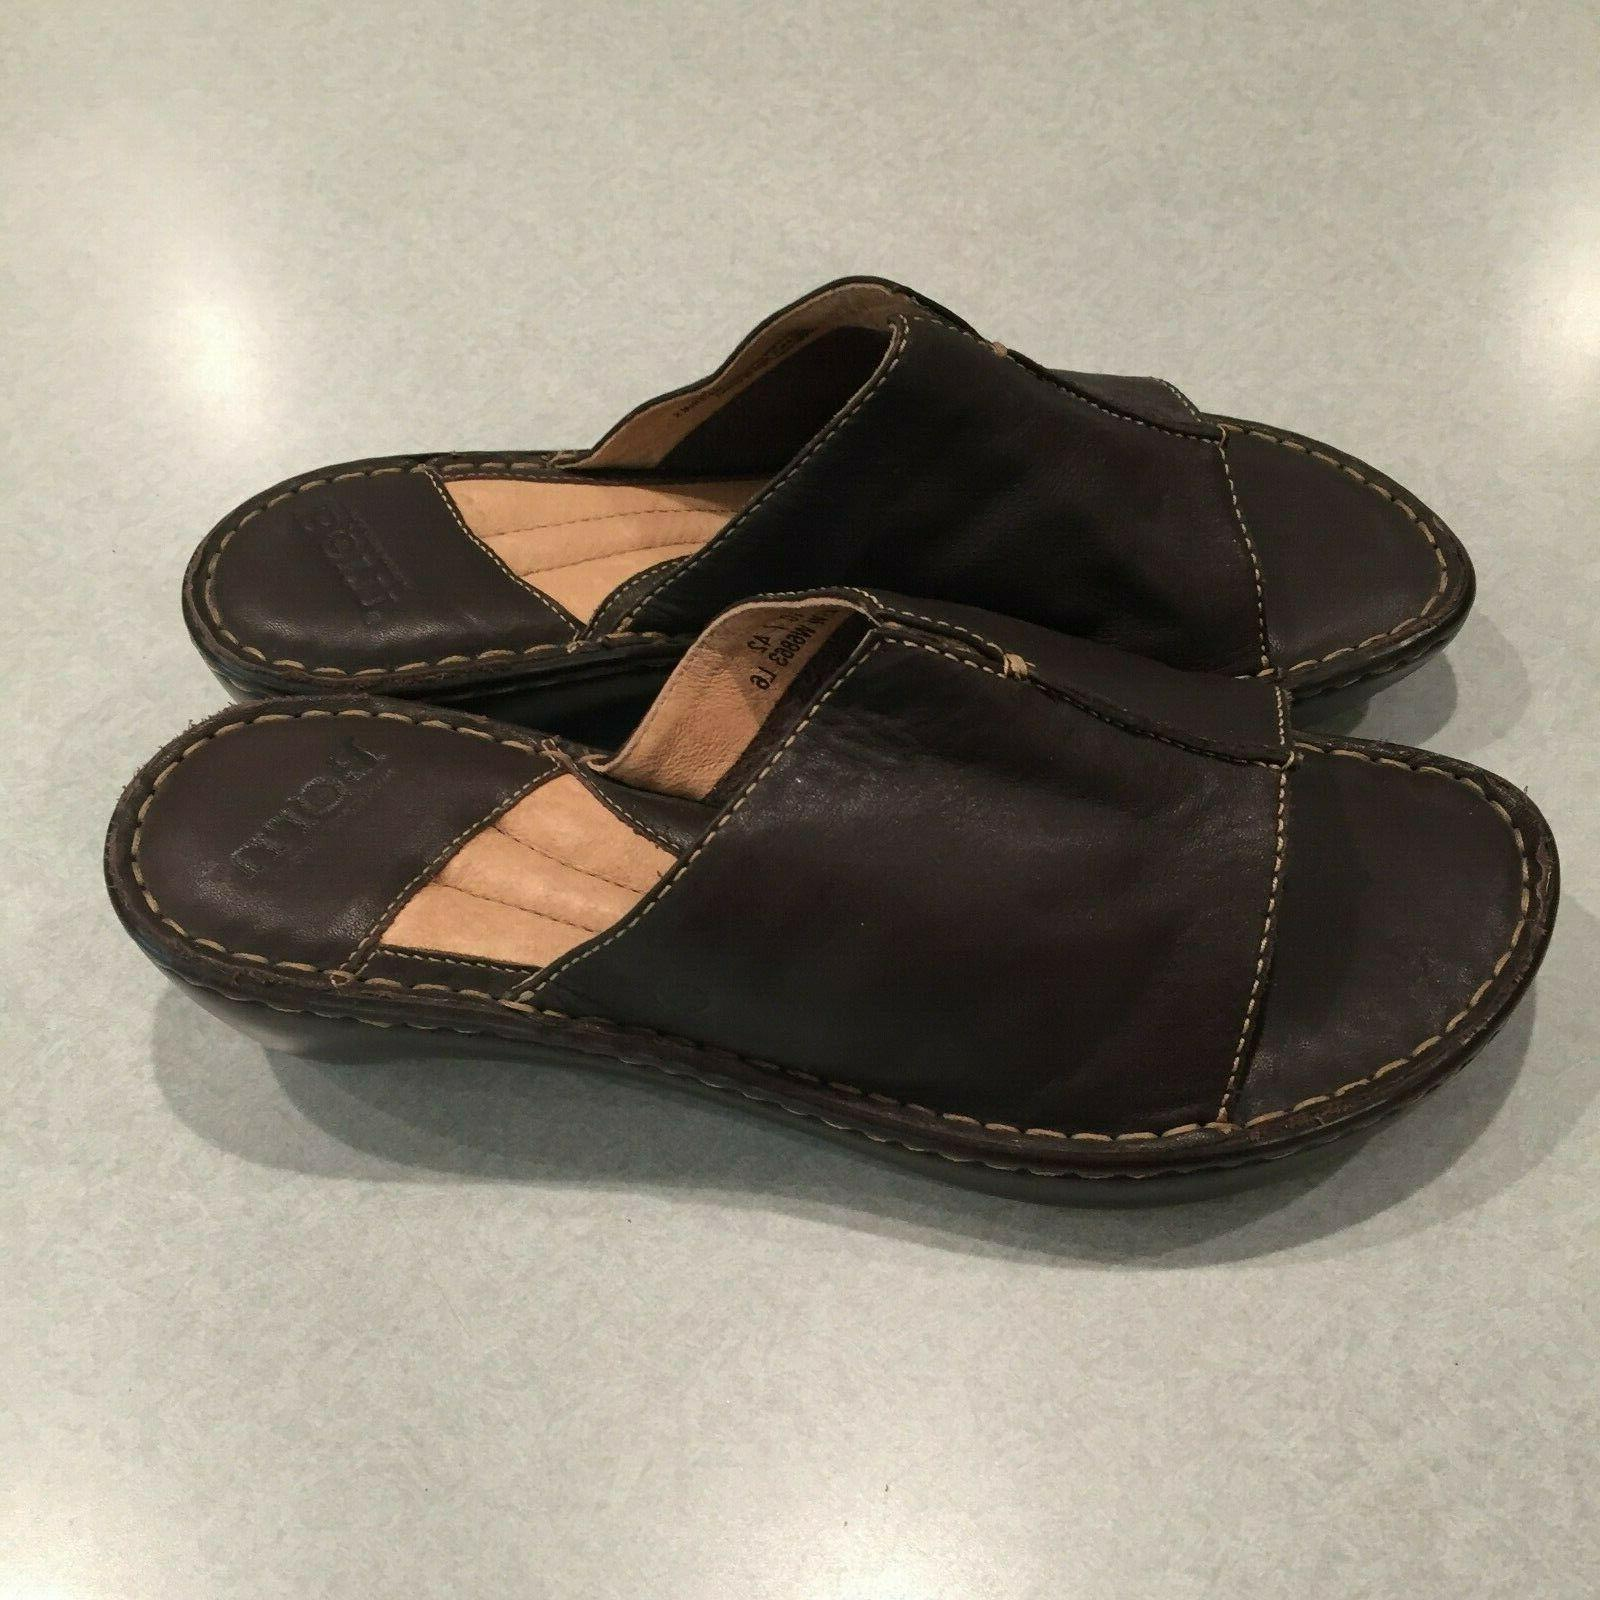 new women s brown leather 2 wedge